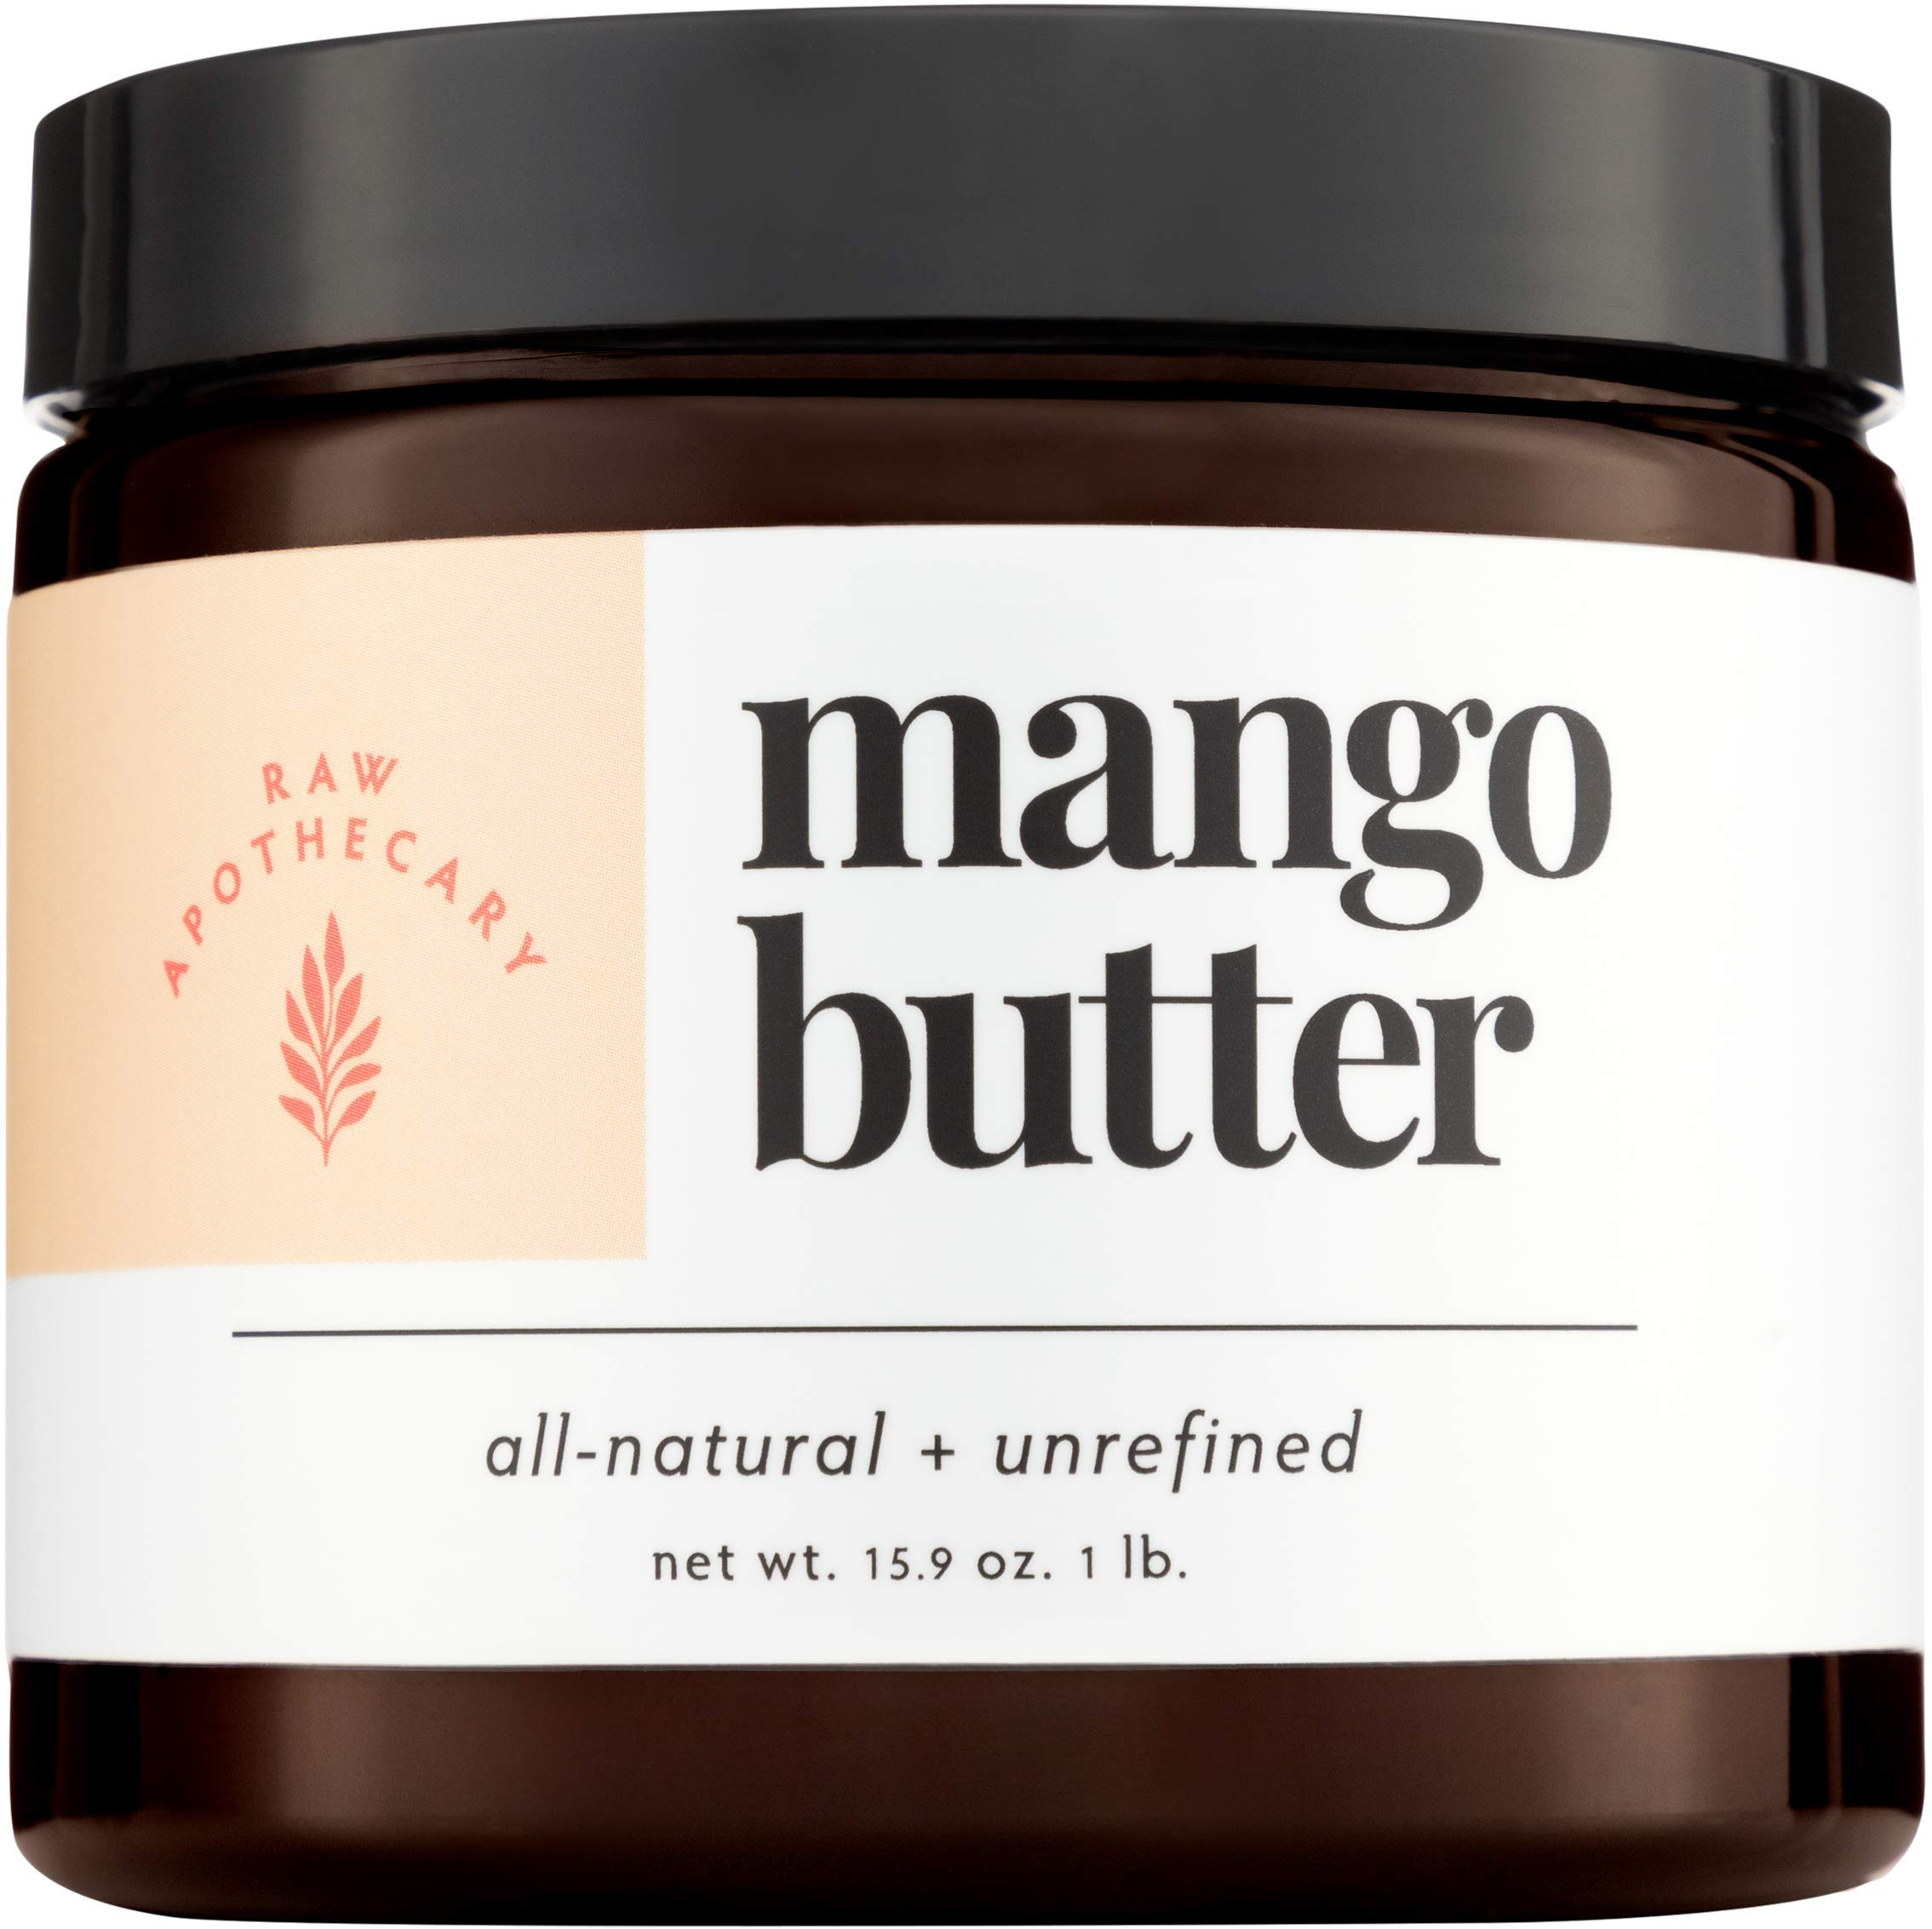 Mango Butter- 100% All Natural by Raw Apothecary- Top-Grade, Unrefined and Additive Free Body Butter (15.9oz)